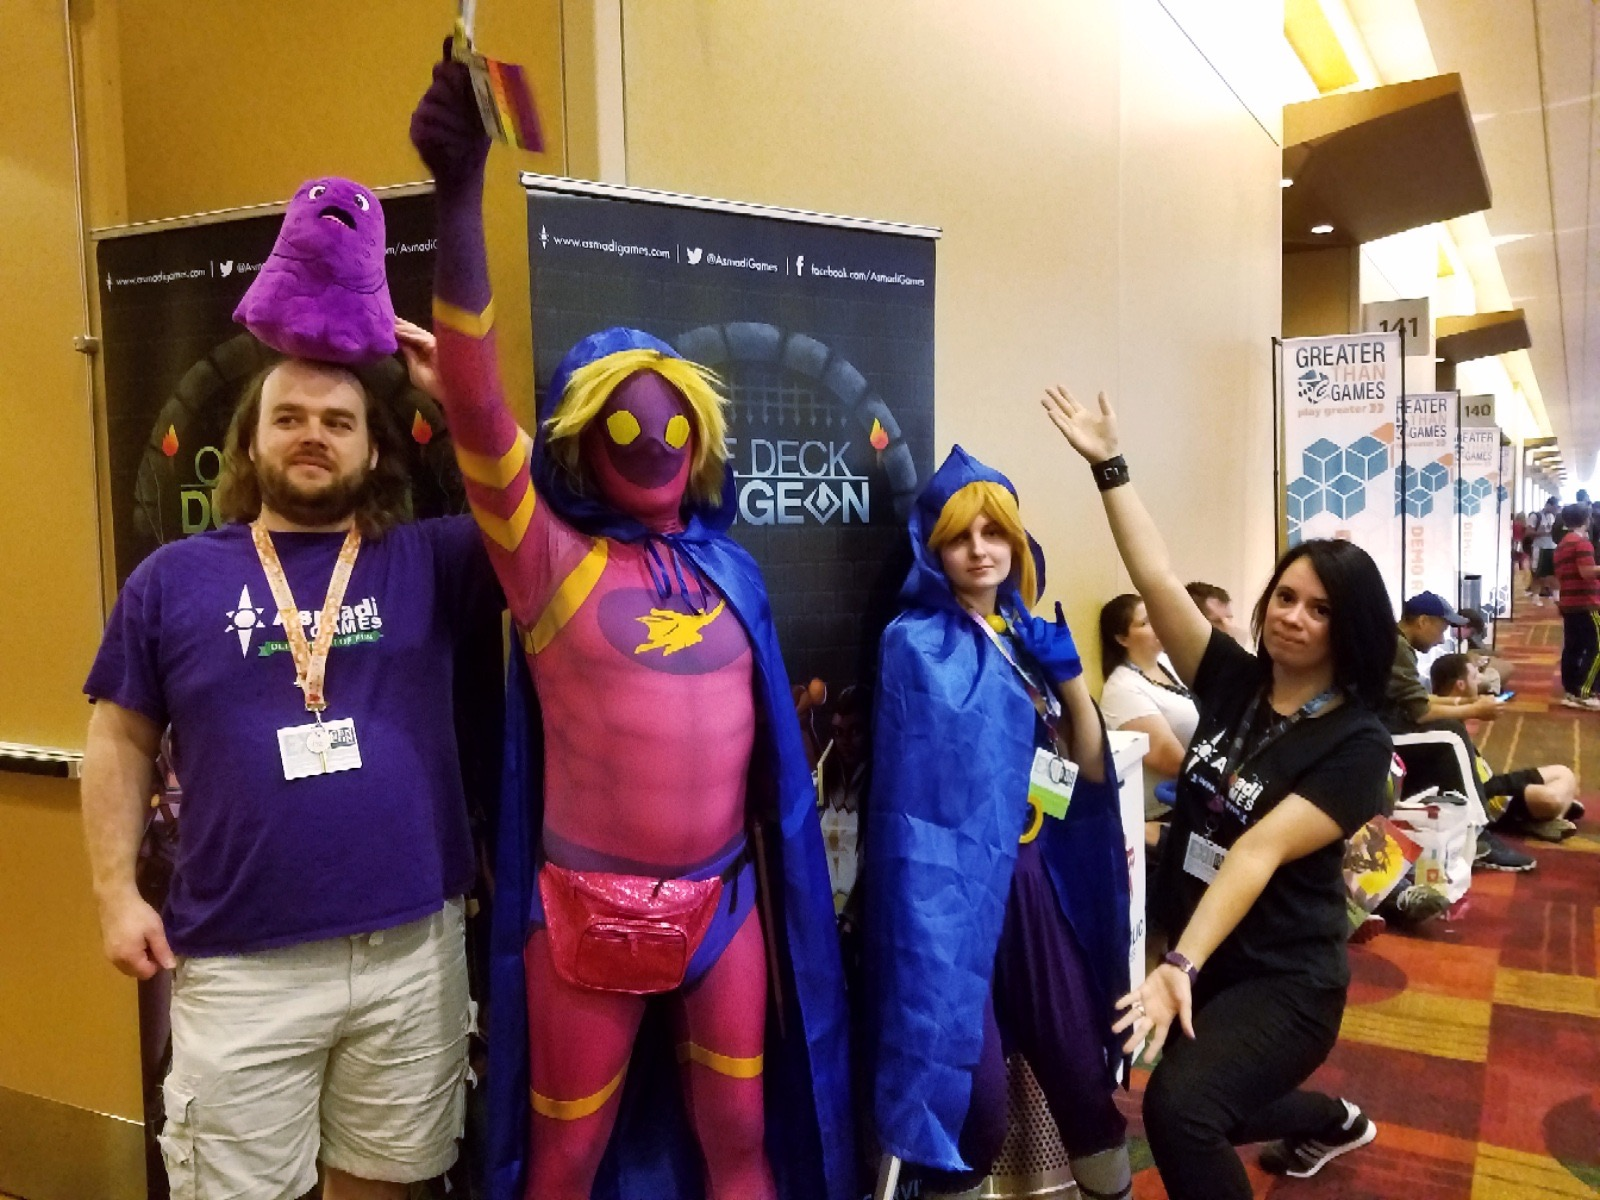 GenCon 2018 - Chris Cieslik with Glooping Ooze, Jeremy as Guise as The Rogue, Crista as The Rogue, and Alanna Cervenak